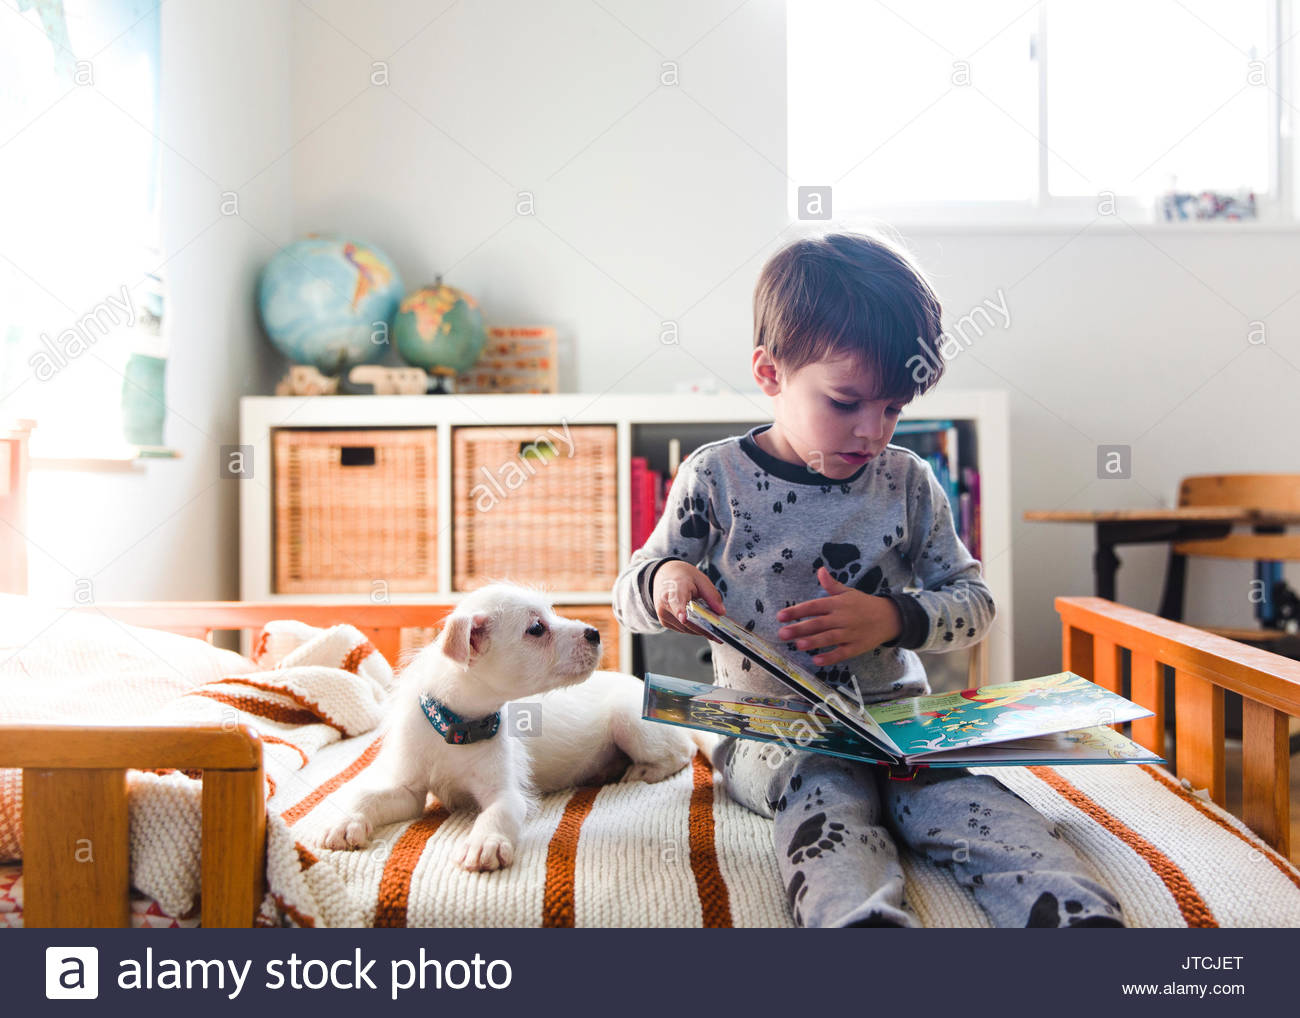 A puppy lying on a bed next to a child, boy reading a book. - Stock Image